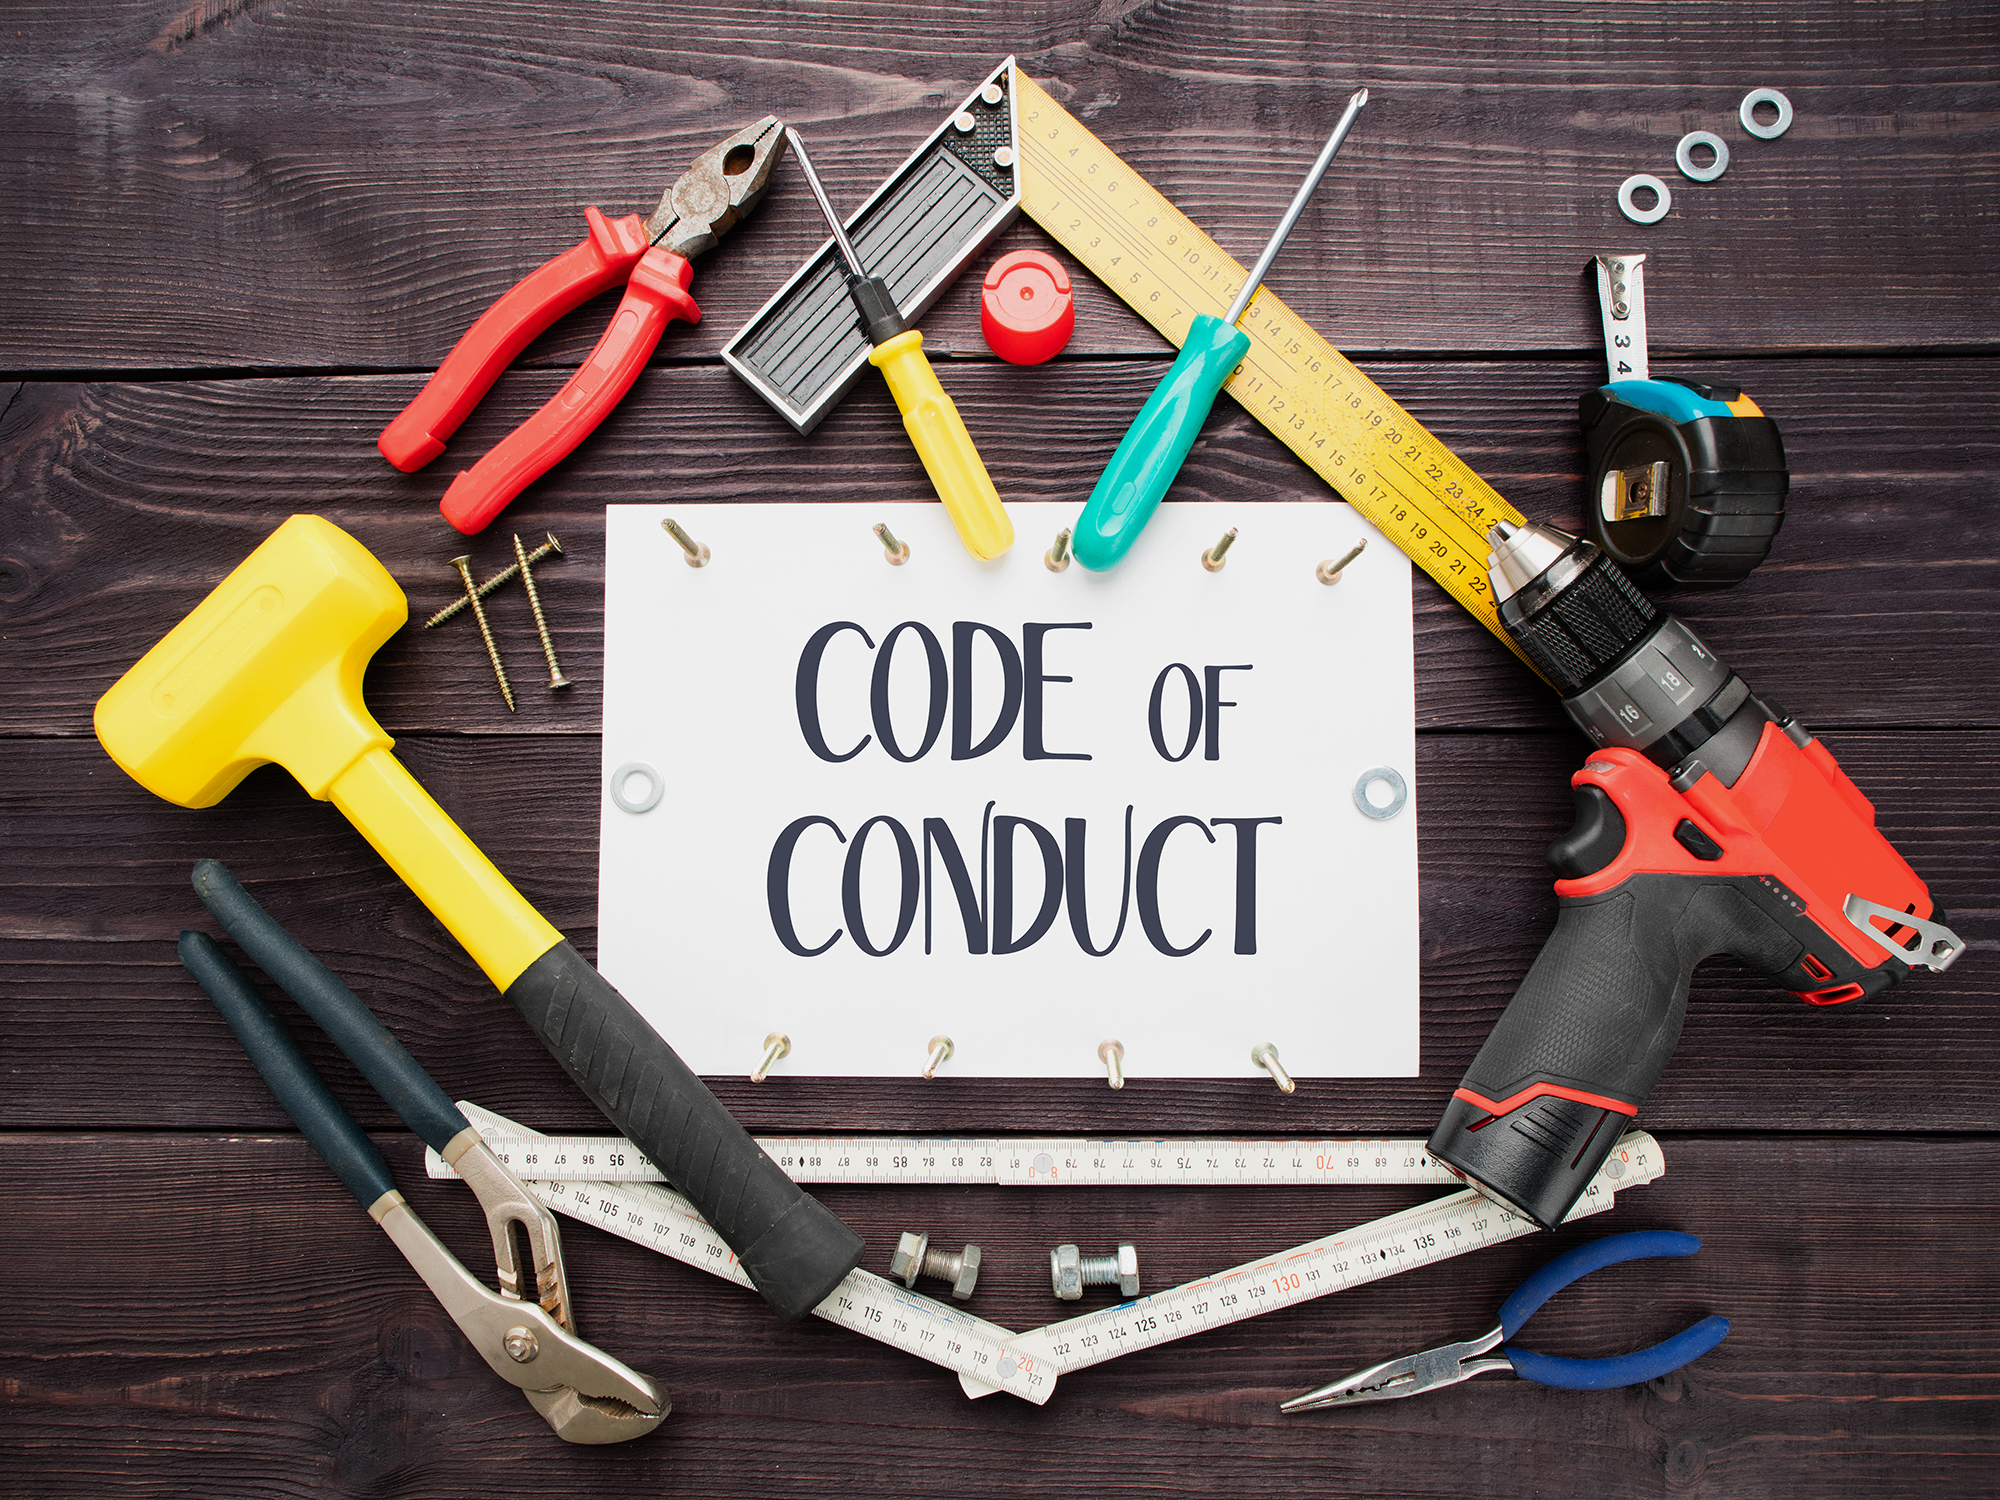 Should Your Project Have a Code of Conduct for Contributors? Yes